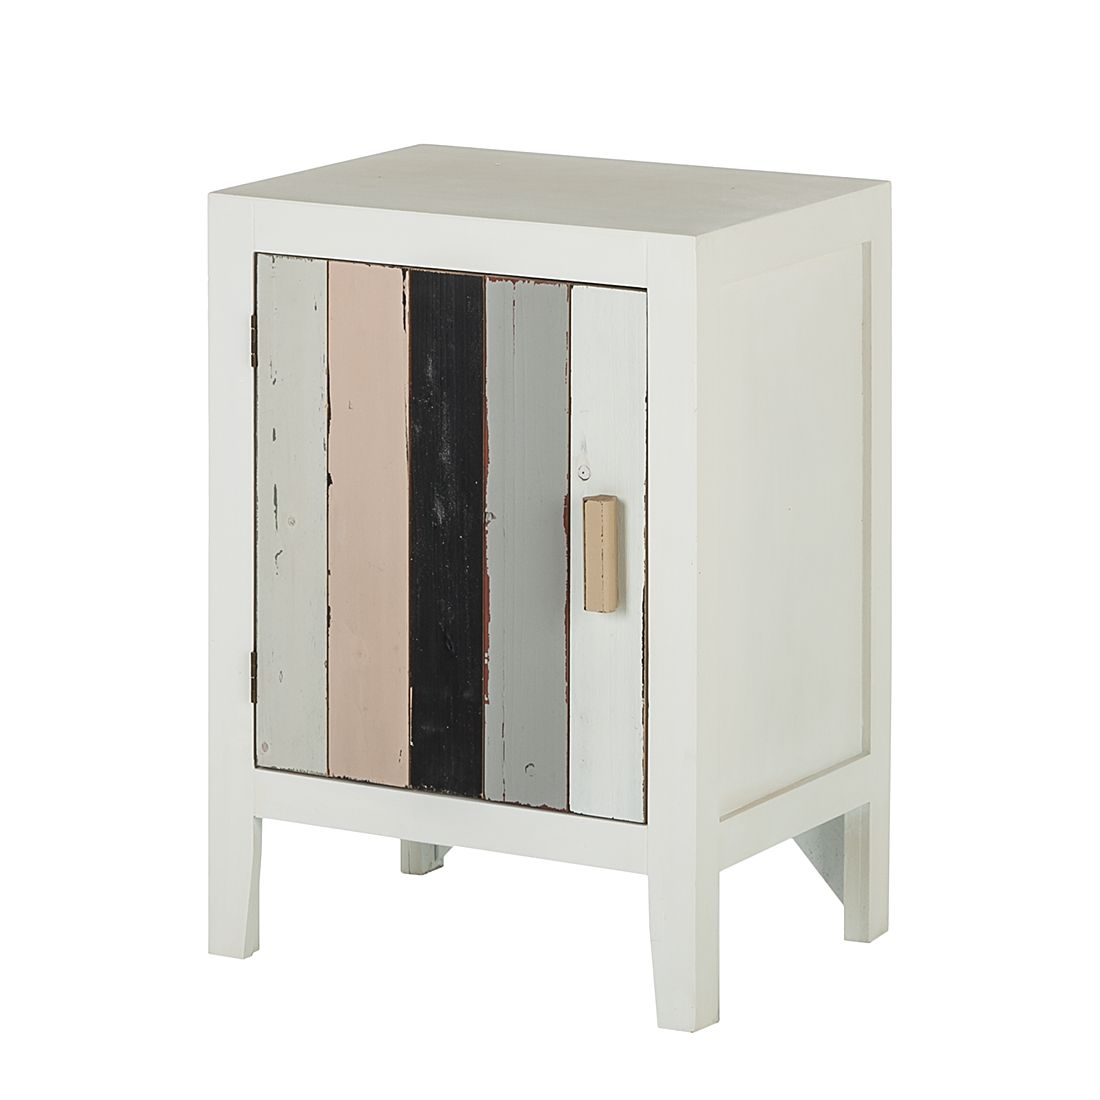 Armadietto Shabby's Chic - Con 1 anta dal look vintage, Jack and Alice